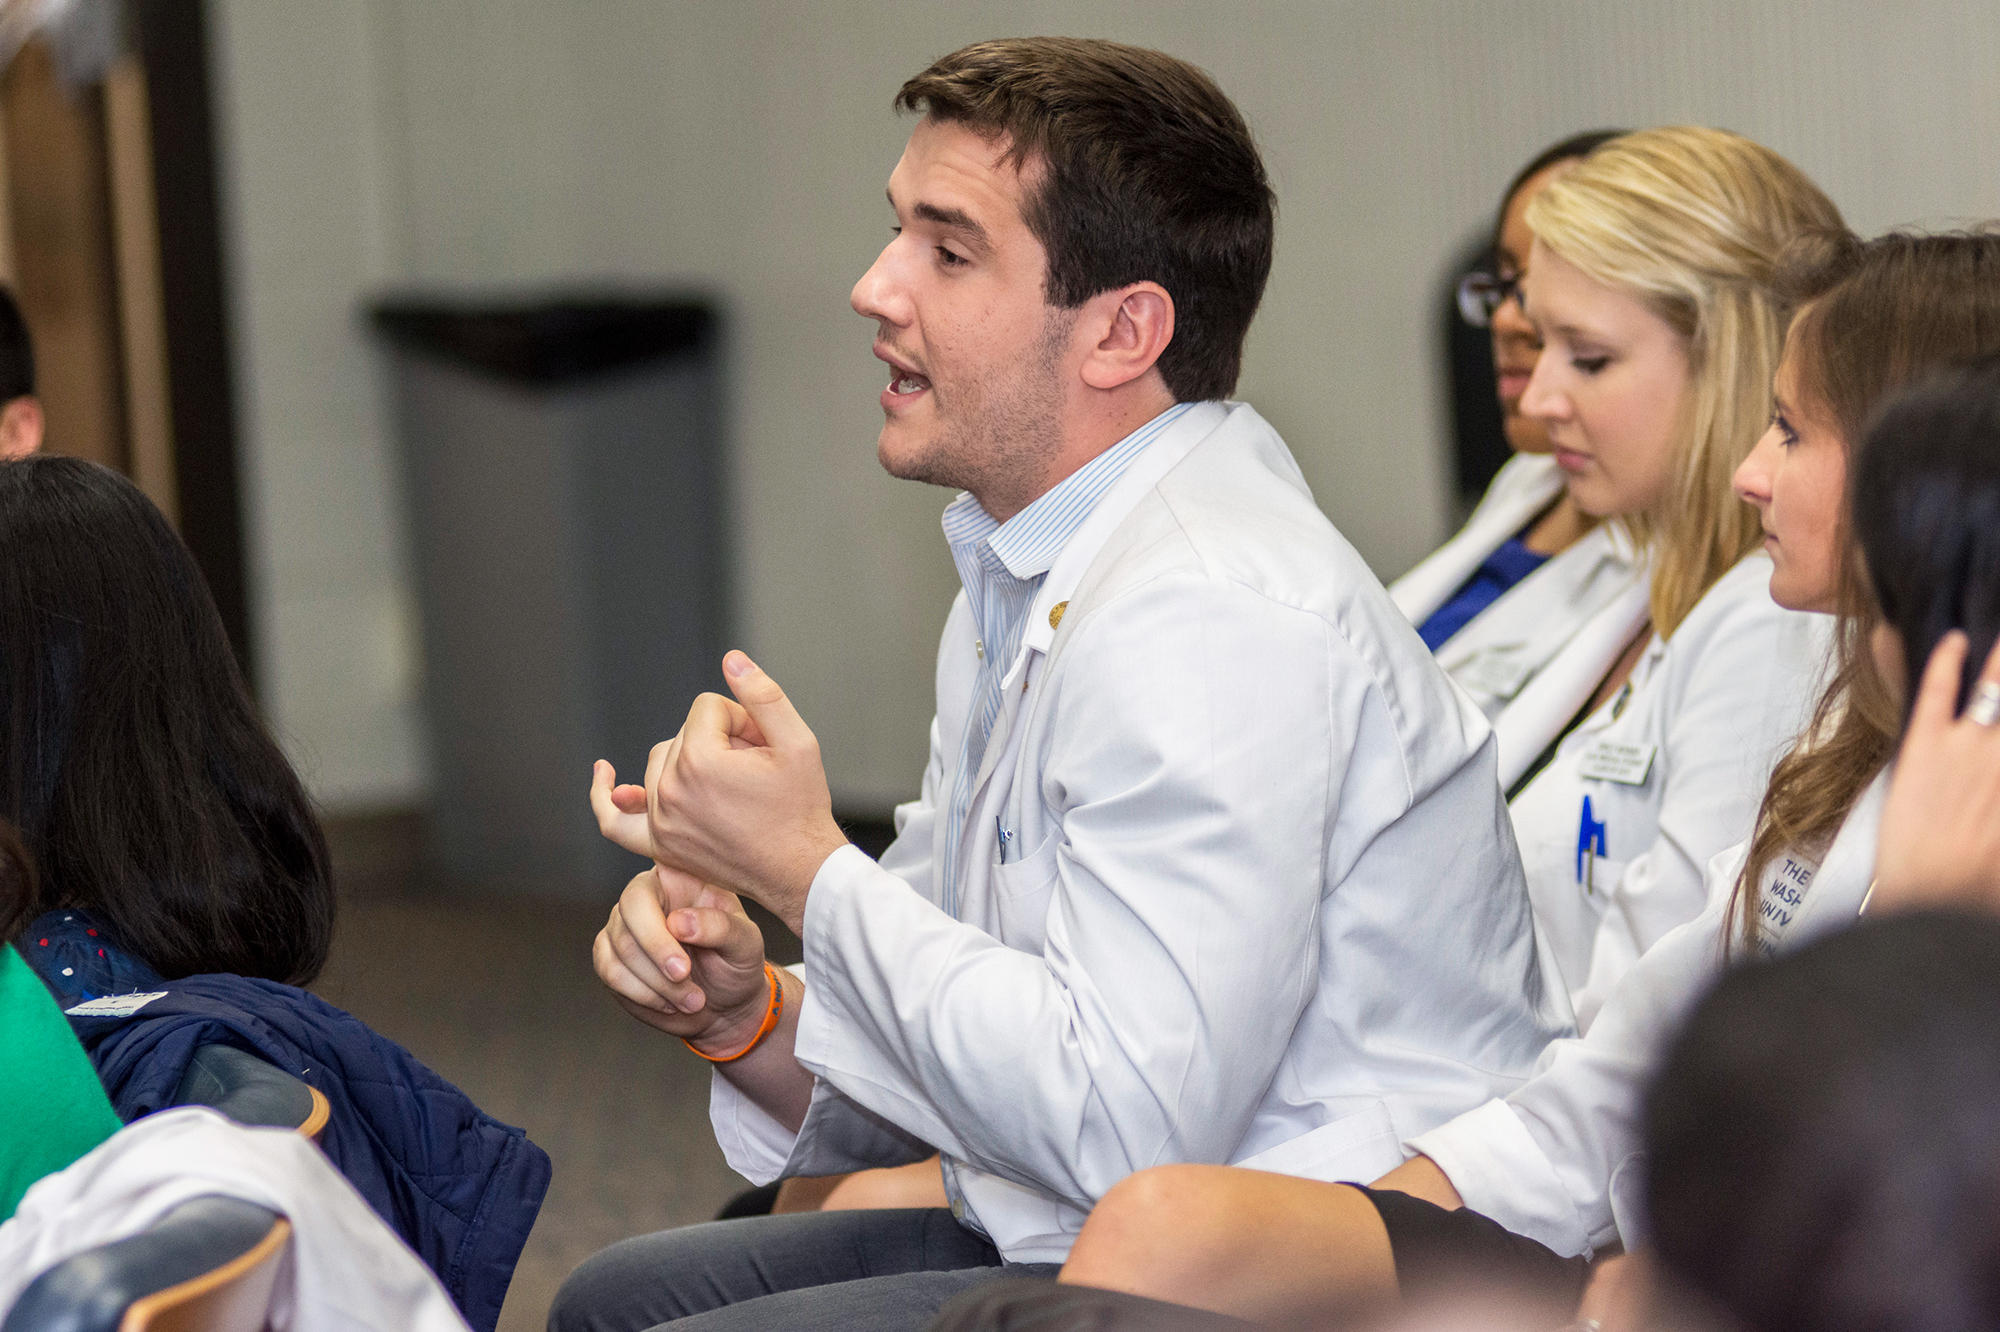 med students dating residents Medical students meet their residency matches across wisconsin the first class of students of students at the medical college of wisconsin green bay campus are ready to enter the next phase of medical training.